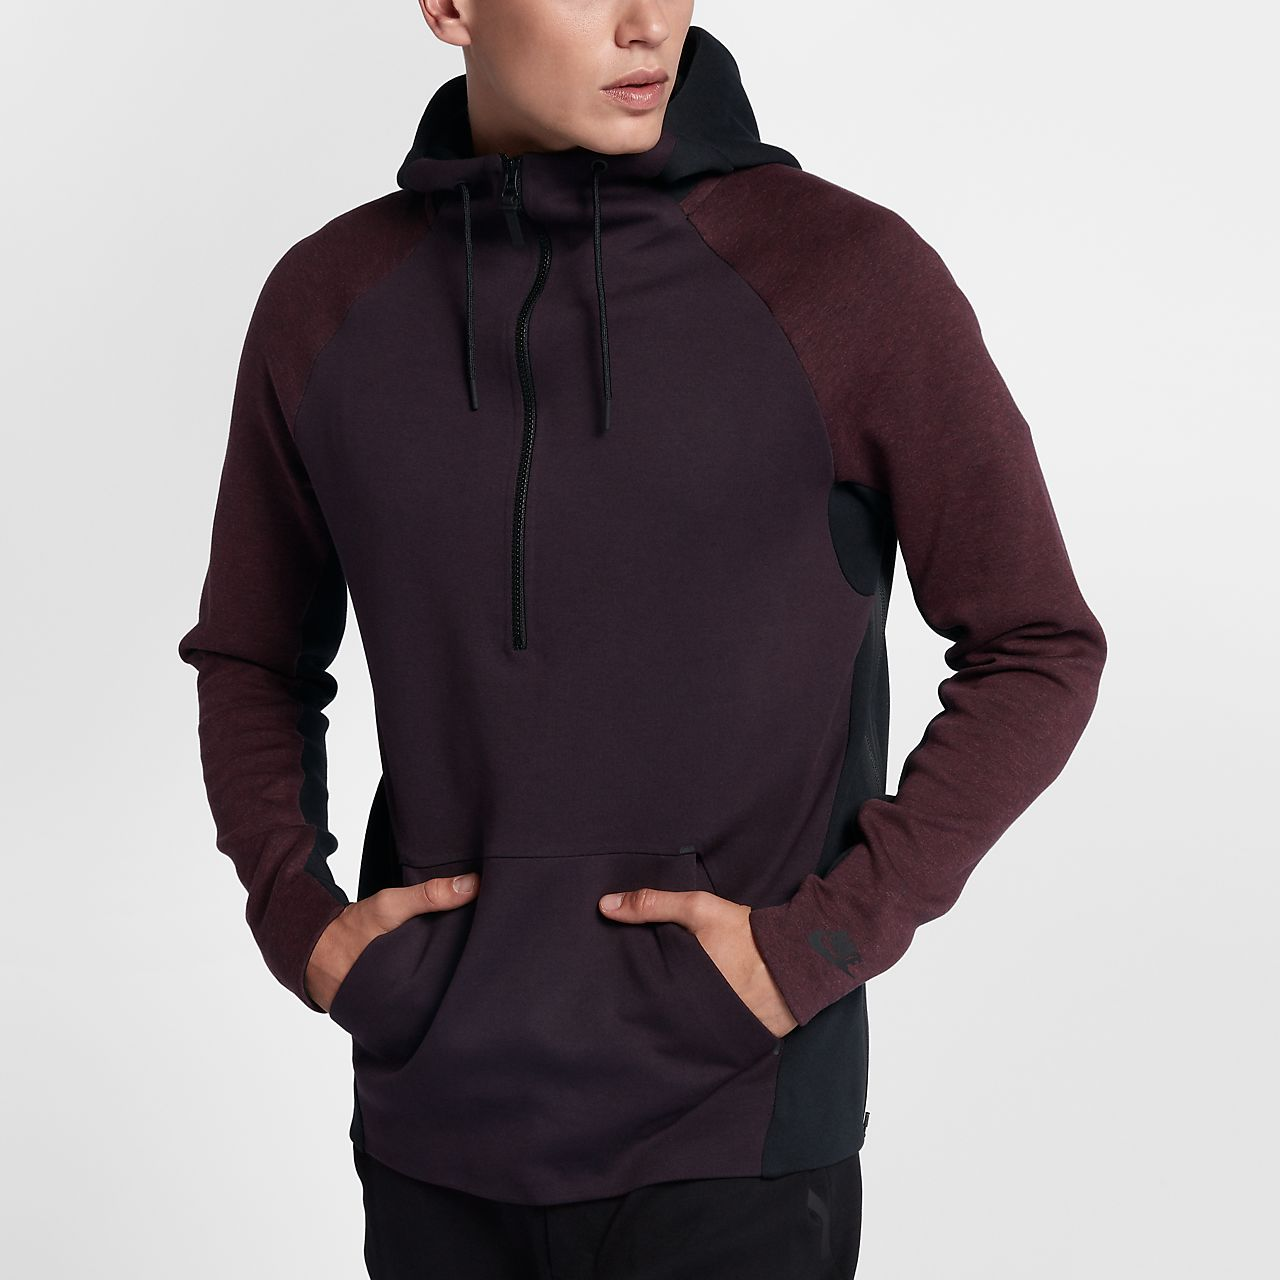 nike sportswear tech fleece men 39 s half zip hoodie sk. Black Bedroom Furniture Sets. Home Design Ideas